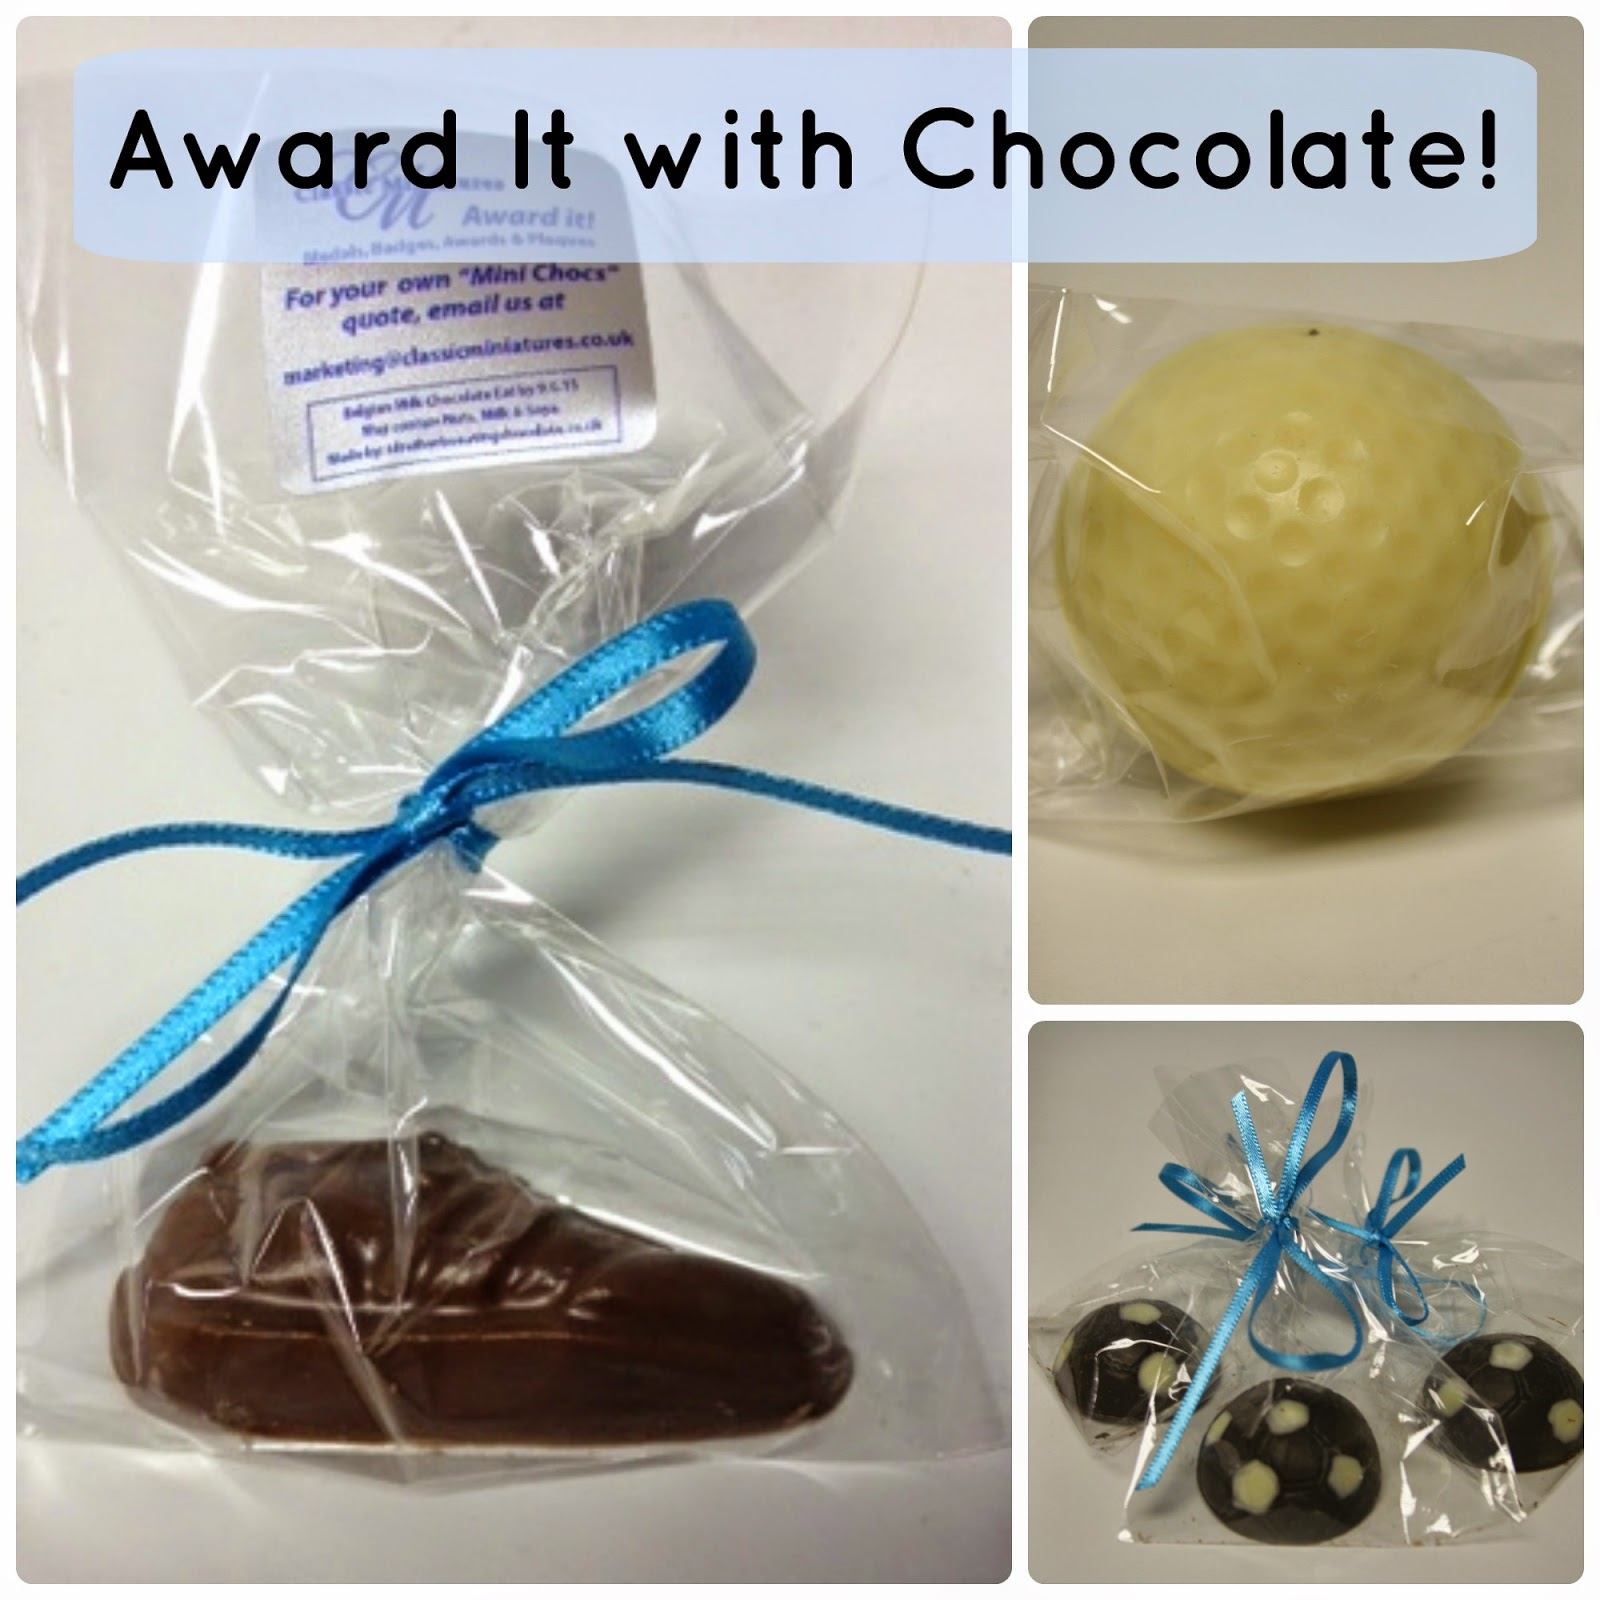 Award It With Chocolate